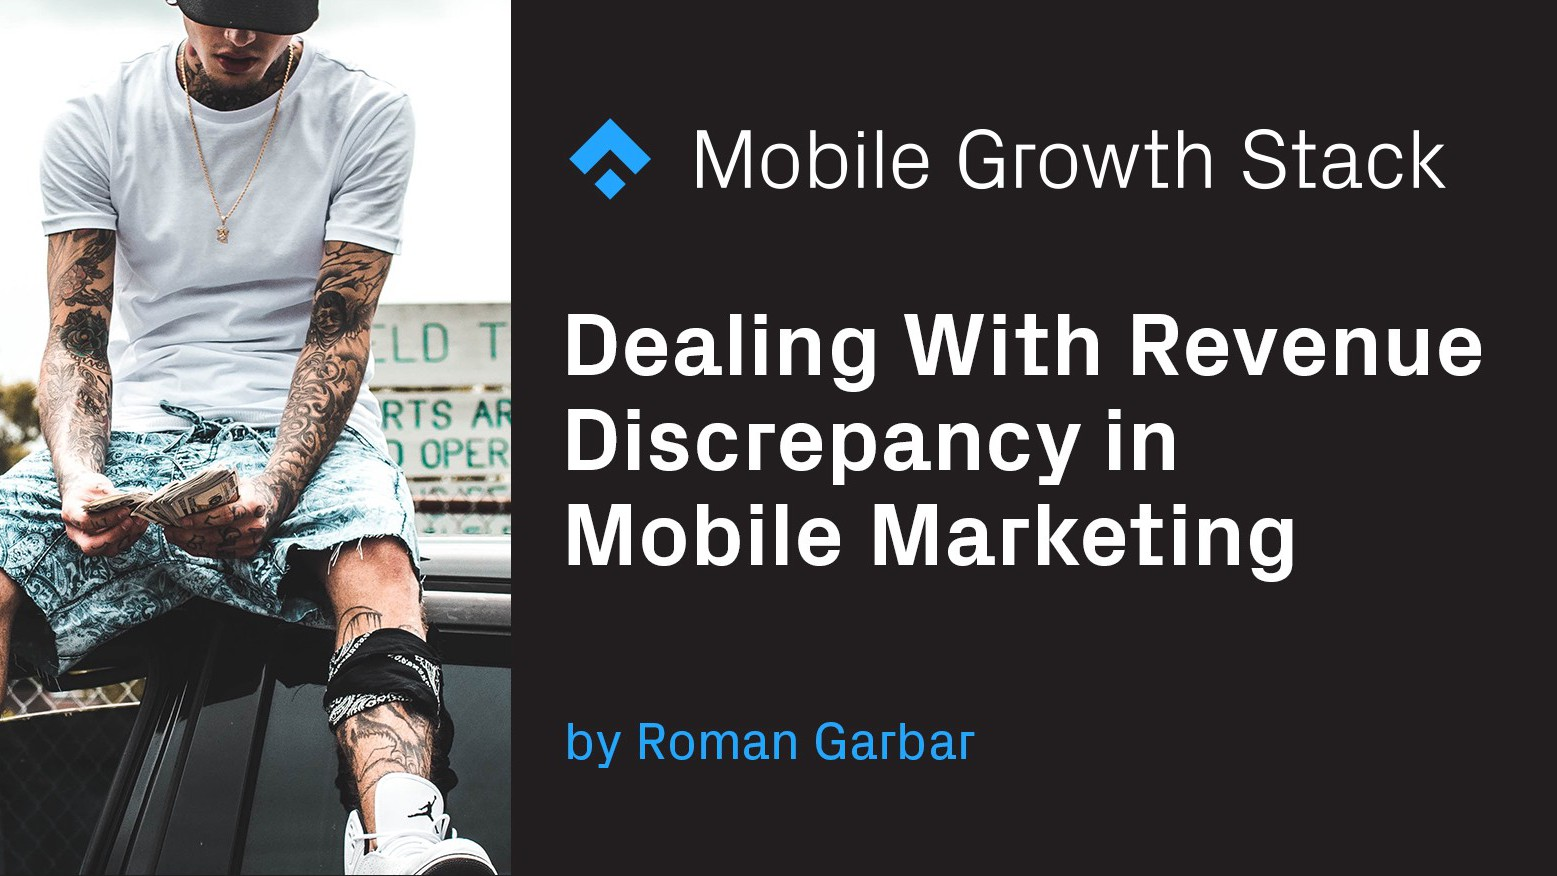 Dealing With Revenue Discrepancy in Mobile Marketing